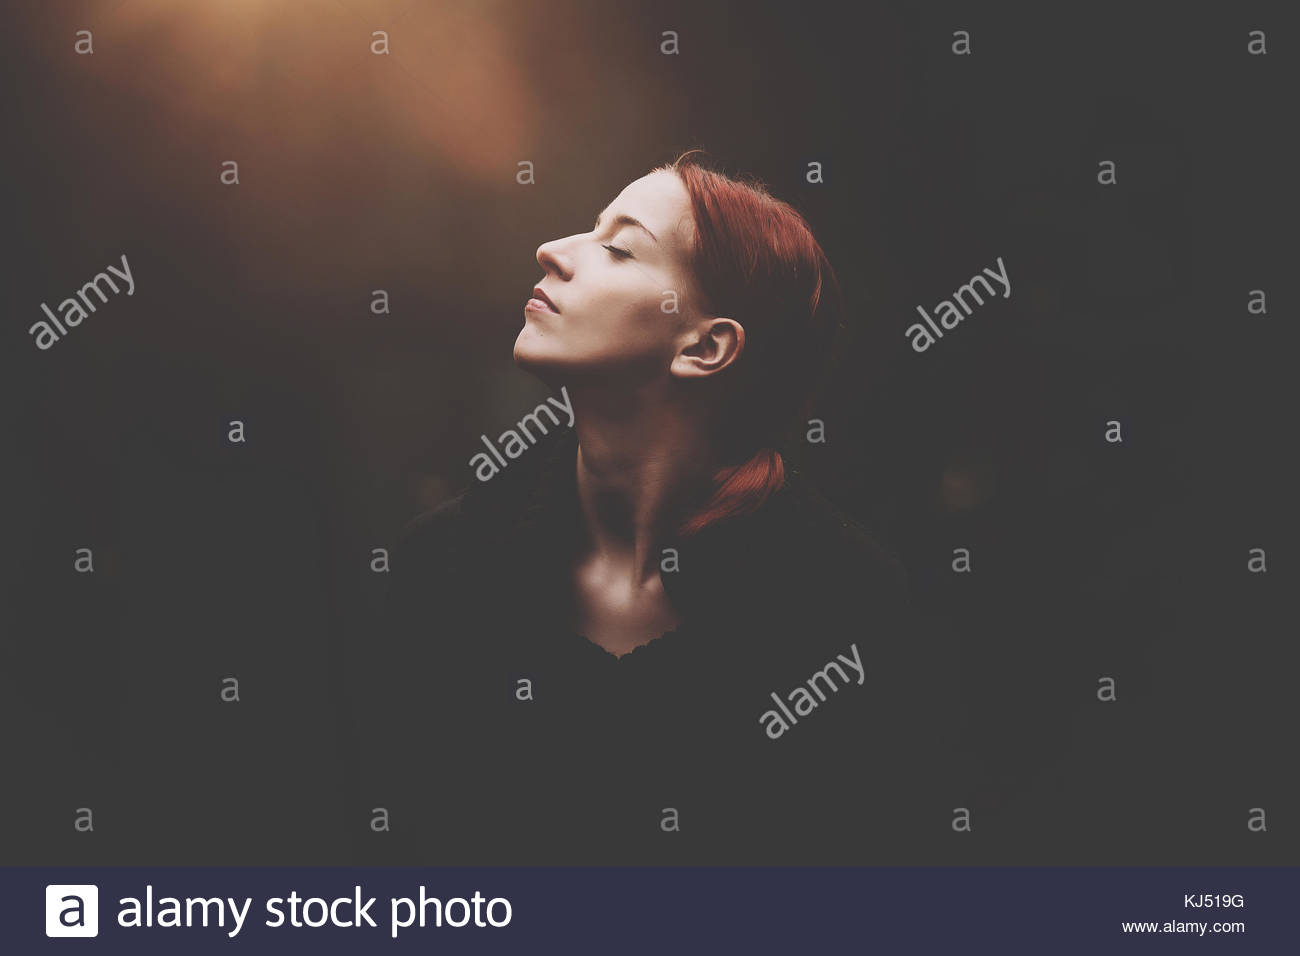 Woman with red hair - Stock Image